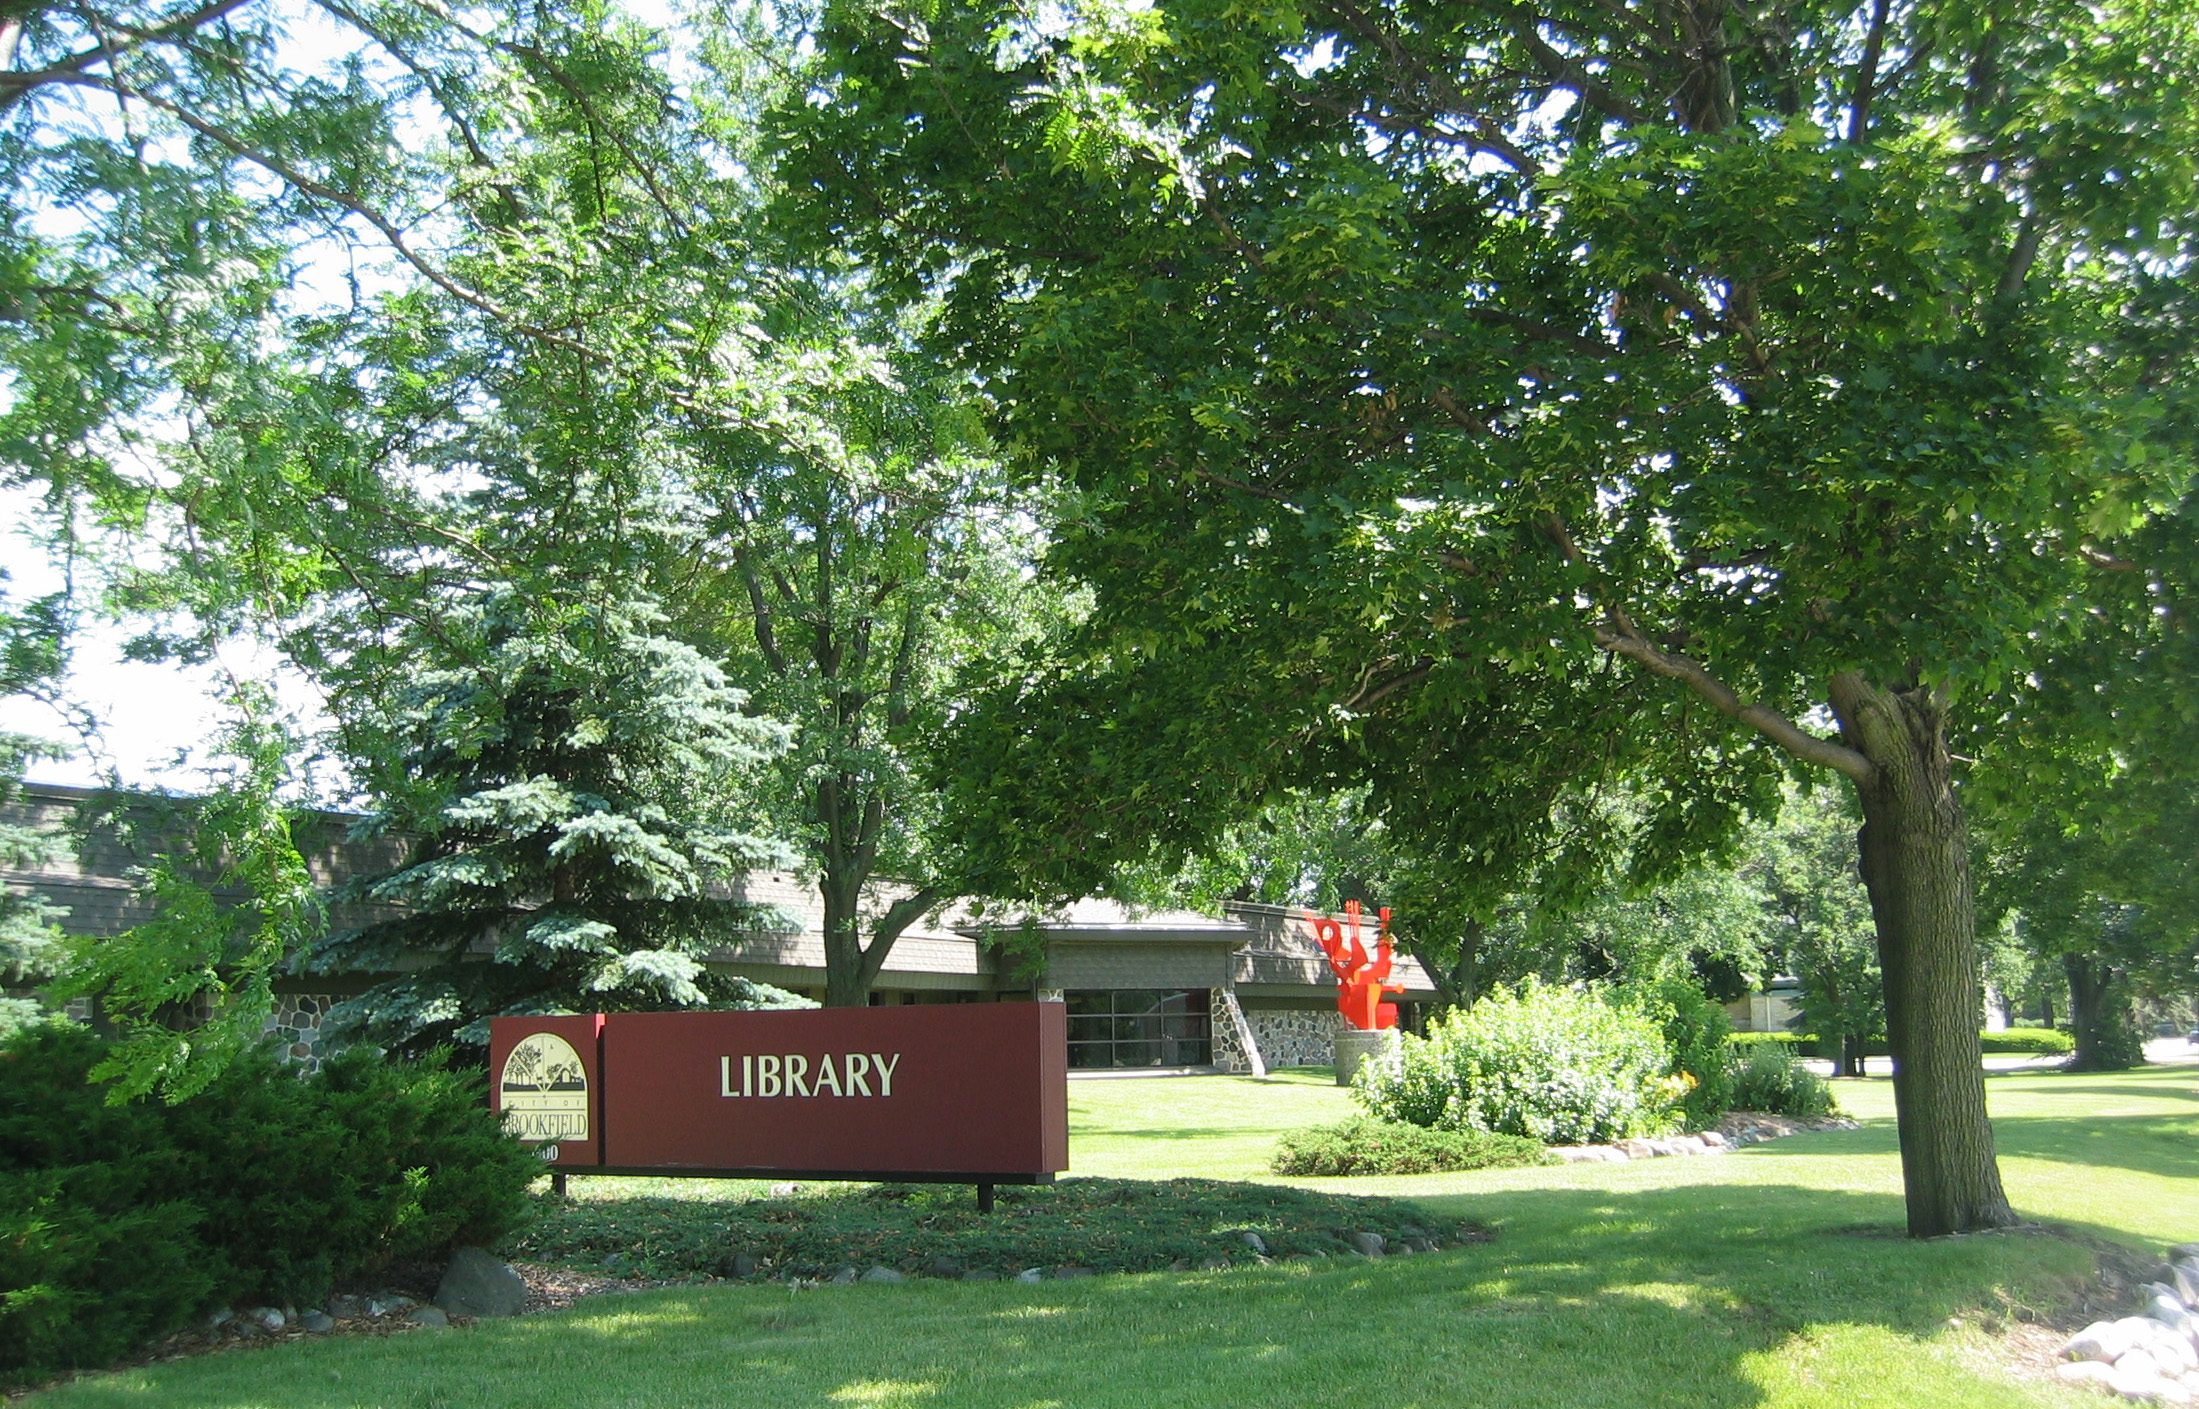 Front view of the Brookfield Public Library with Guido Brink sculpture